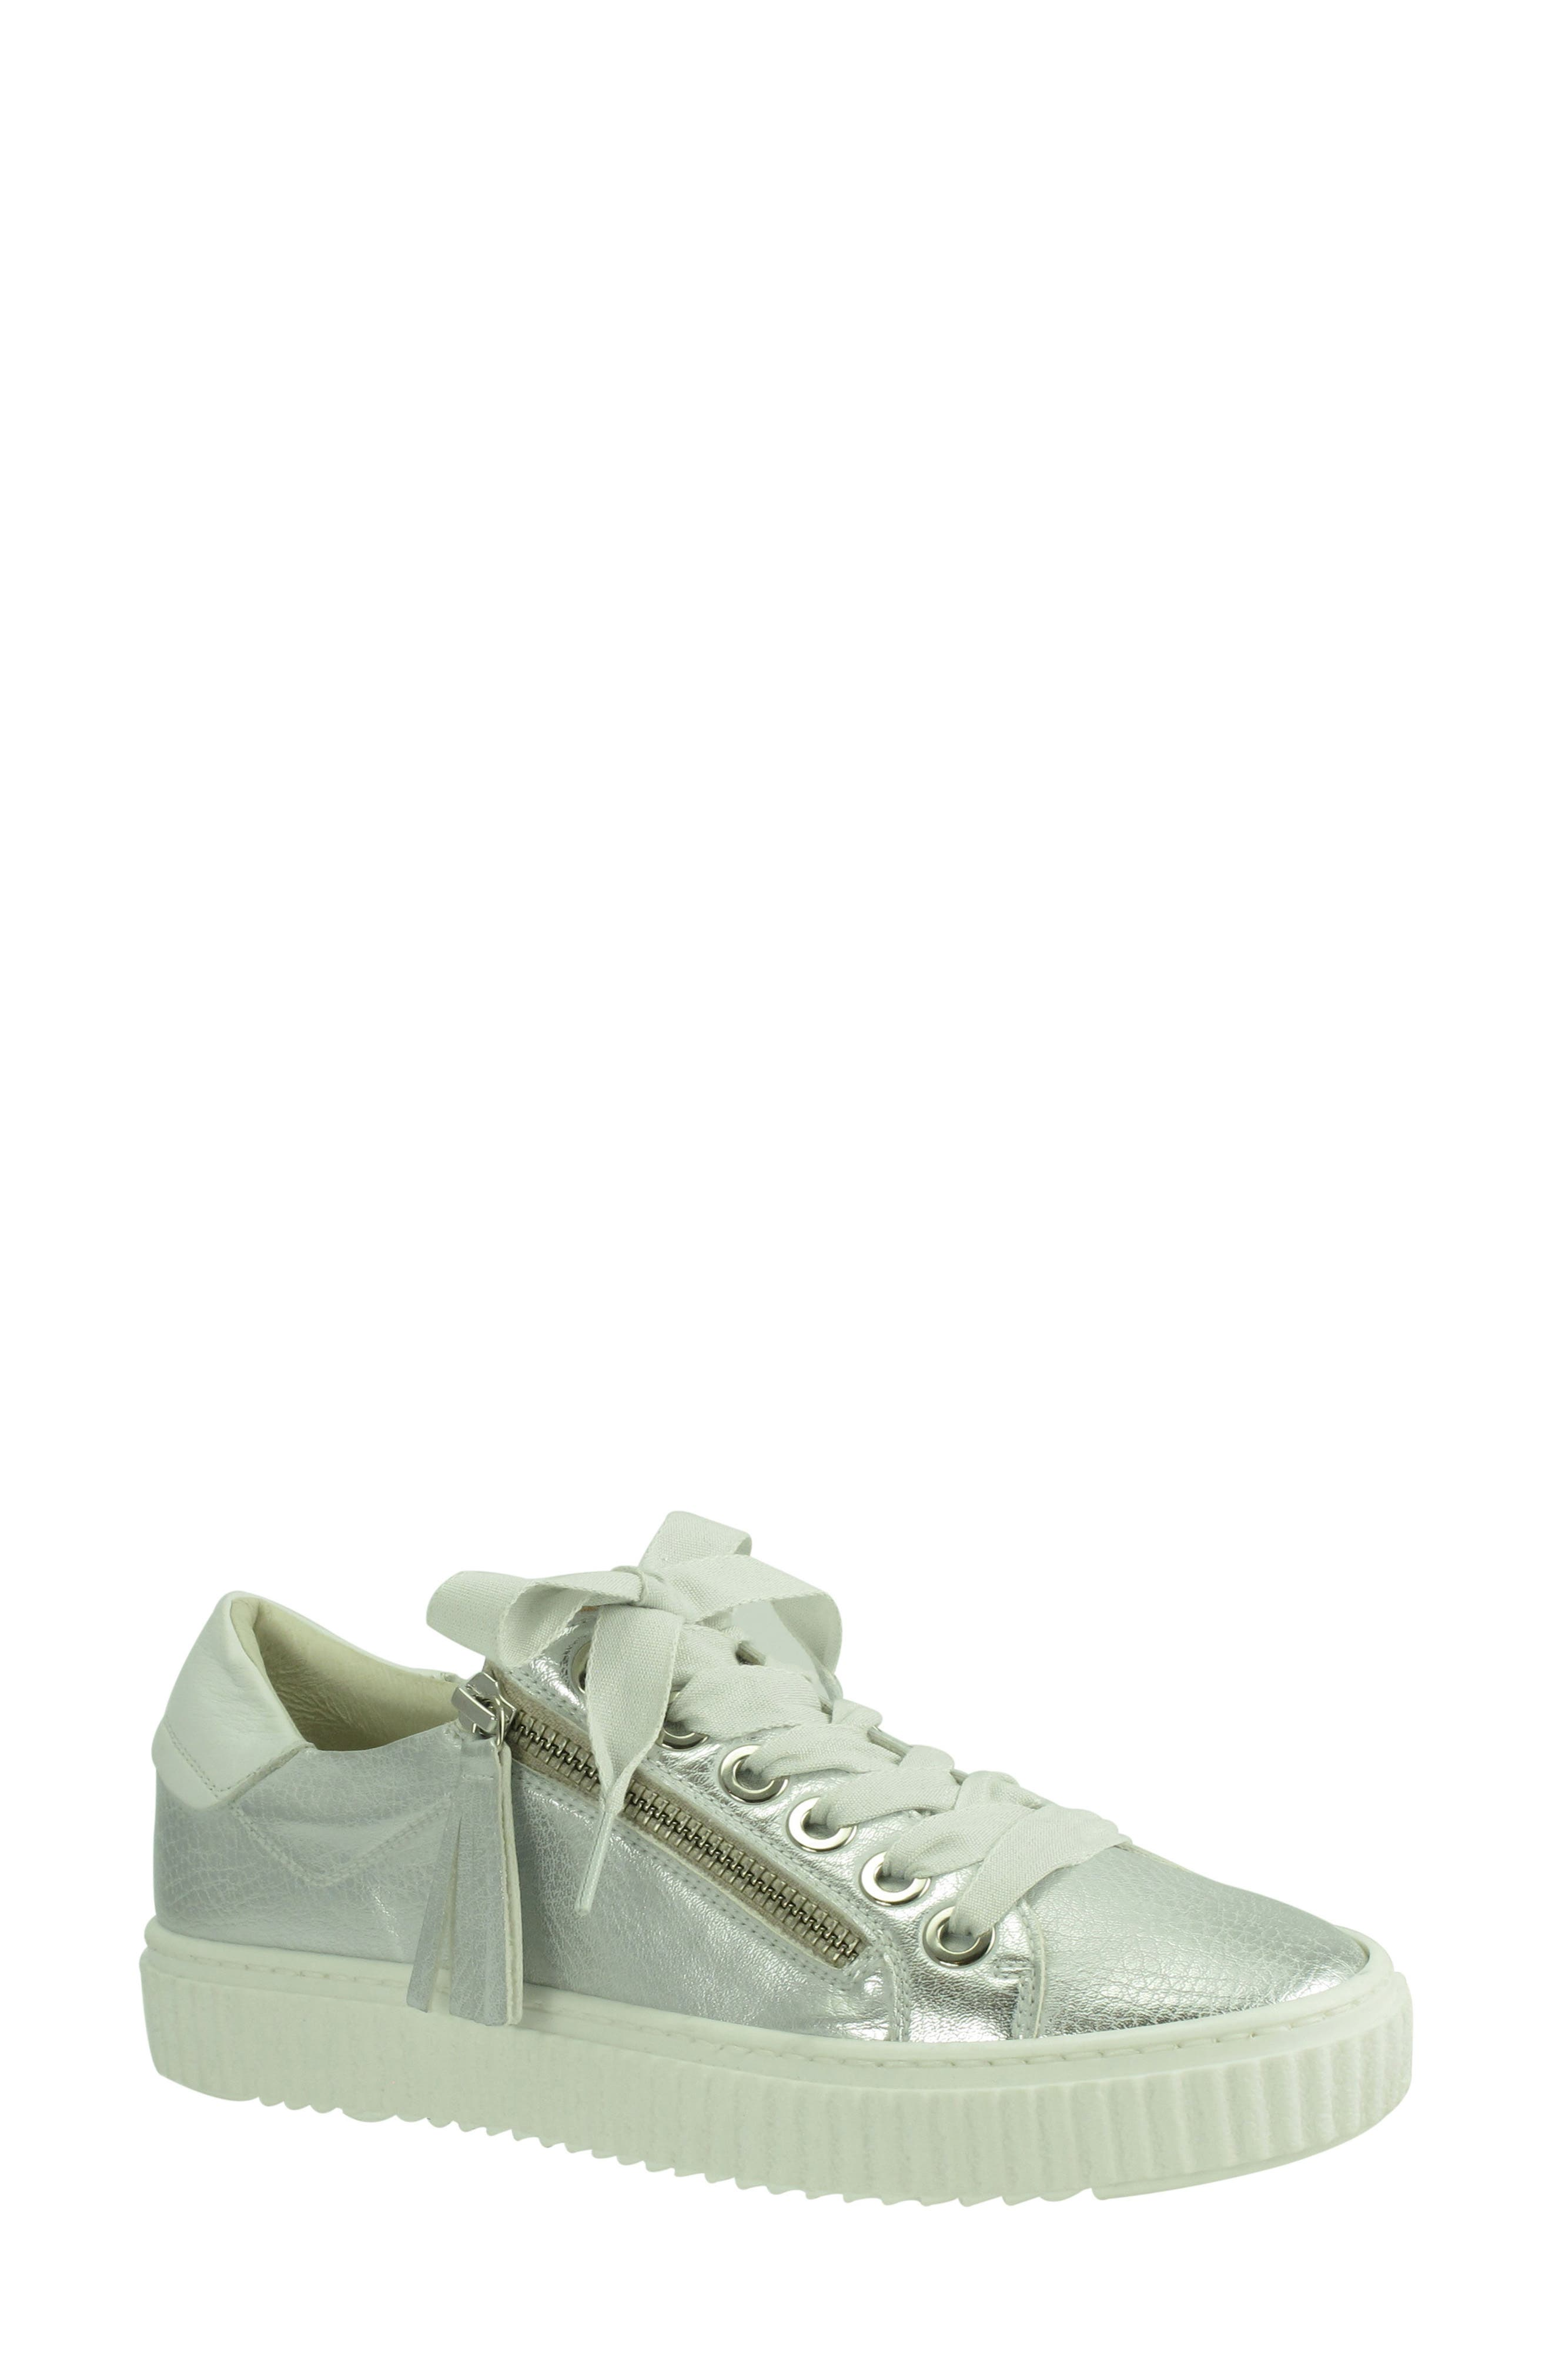 Posey Sneaker,                         Main,                         color, SILVER LEATHER